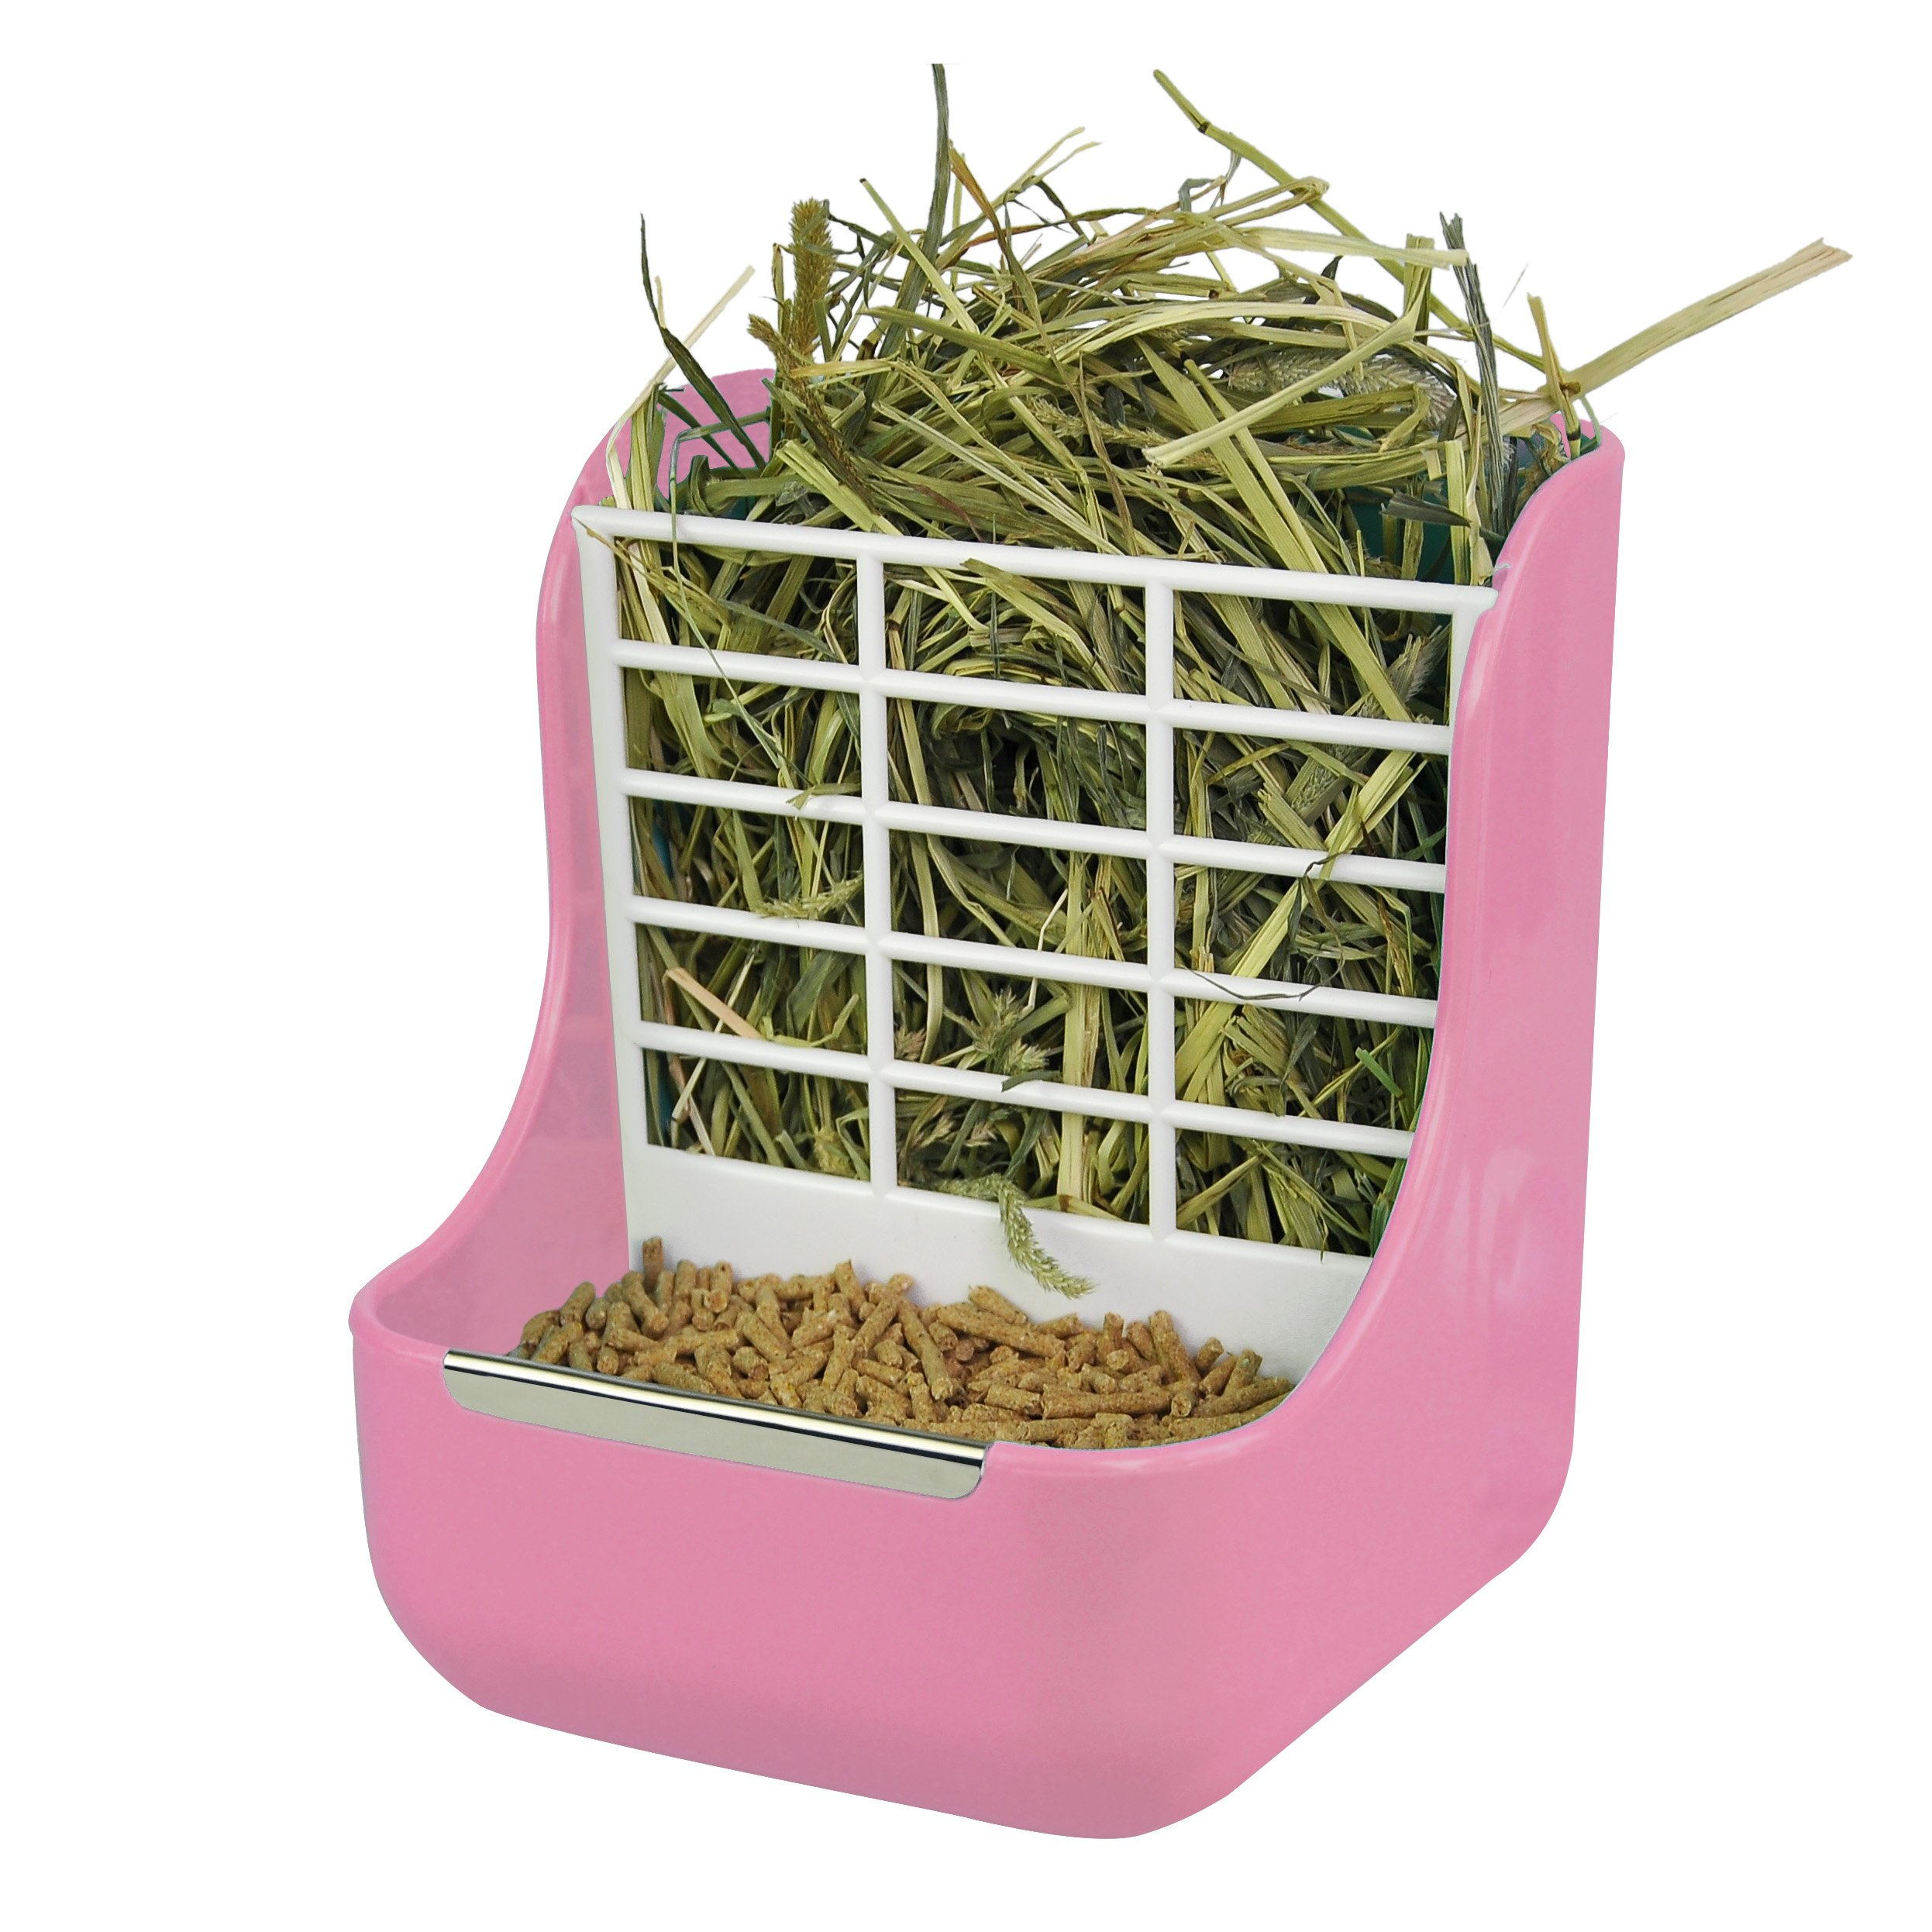 Niteangel 2 in 1 Hay Feeder Manger, Feeder Bowls Double Use for Grass & Food